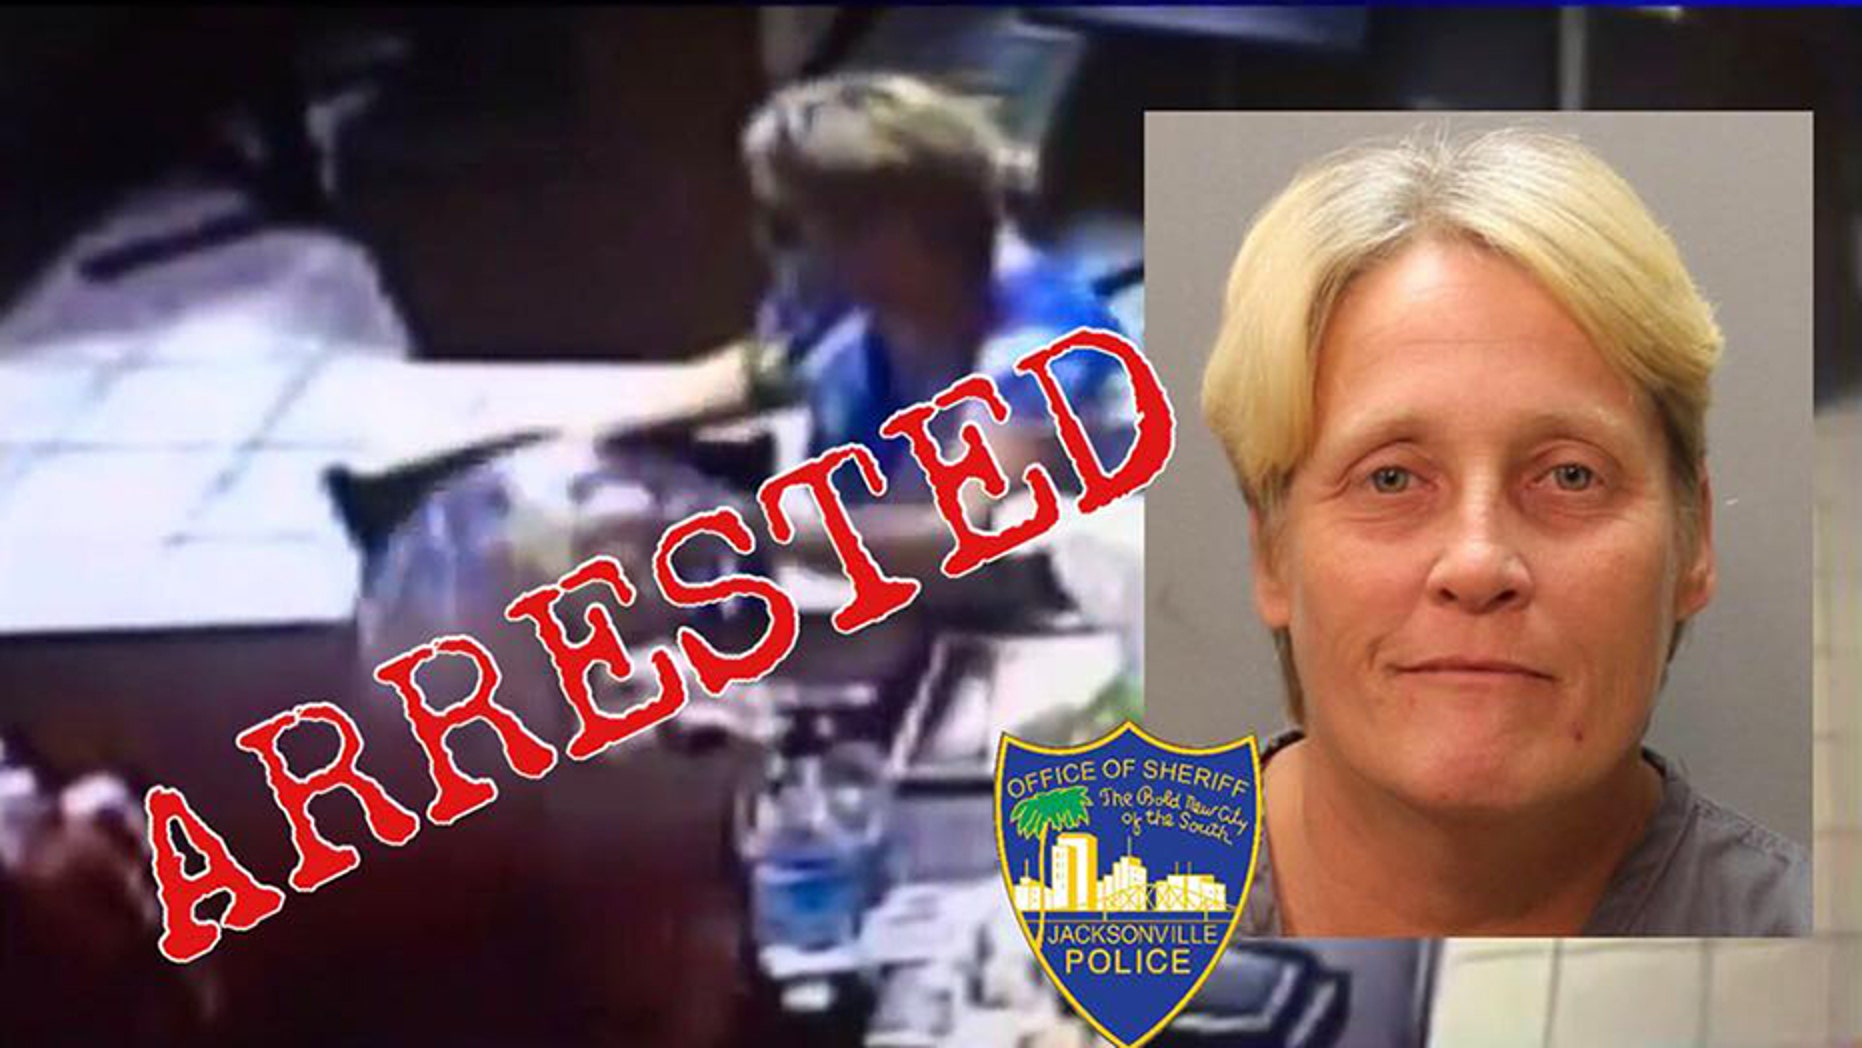 Mugshot for Tammy Wynnell Crews, 46, accused of stealing a donation jar from a restaurant meant for the family of slain 7-year-old girl.